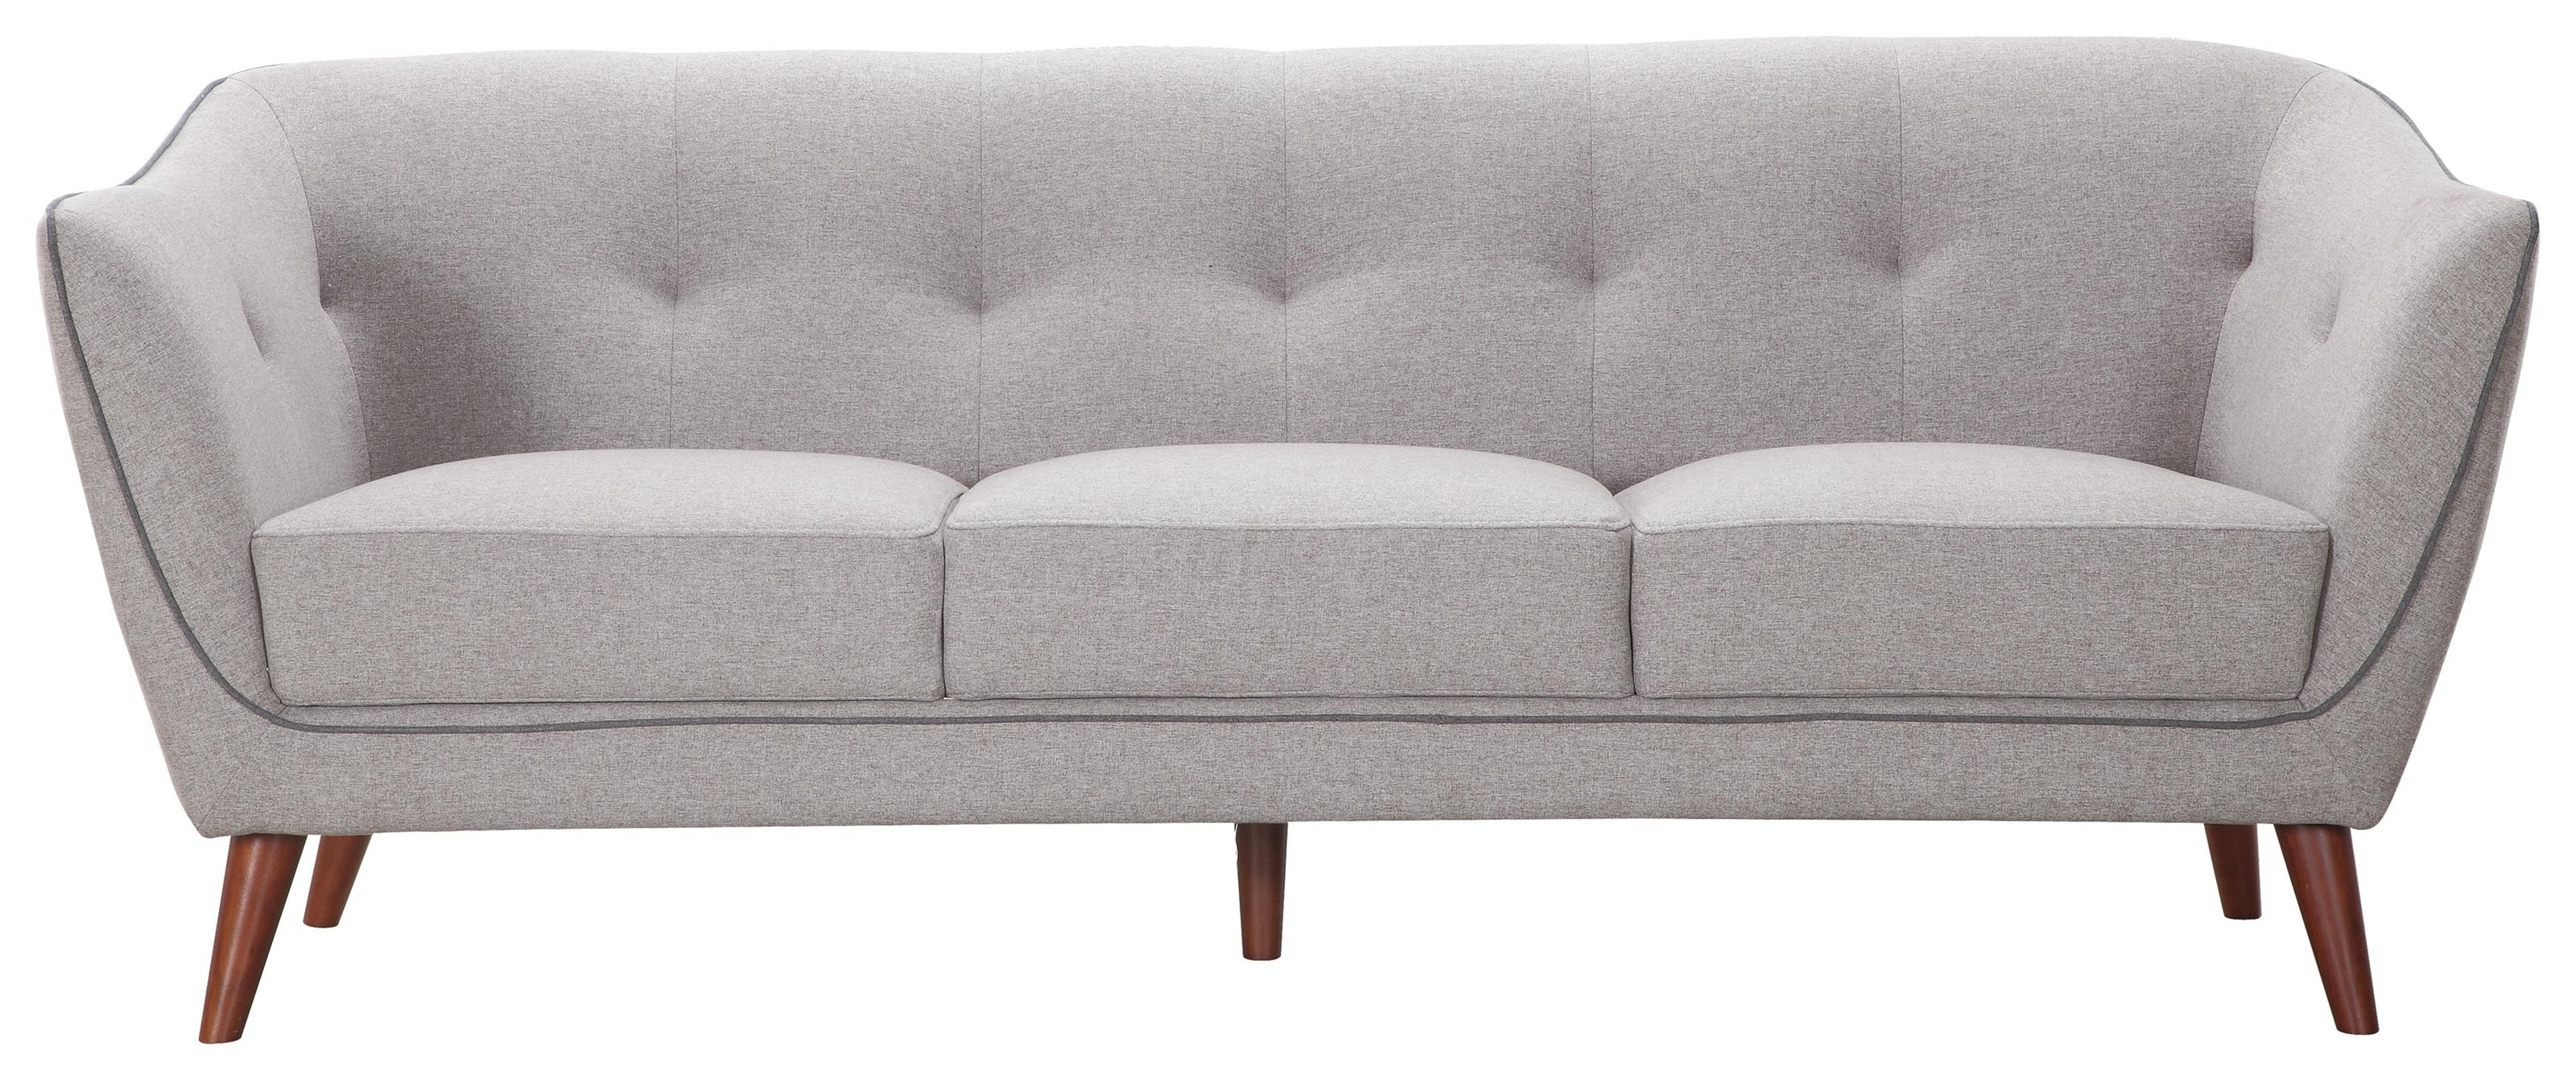 Sunday Sofa by Urban Chic at Beck's Furniture